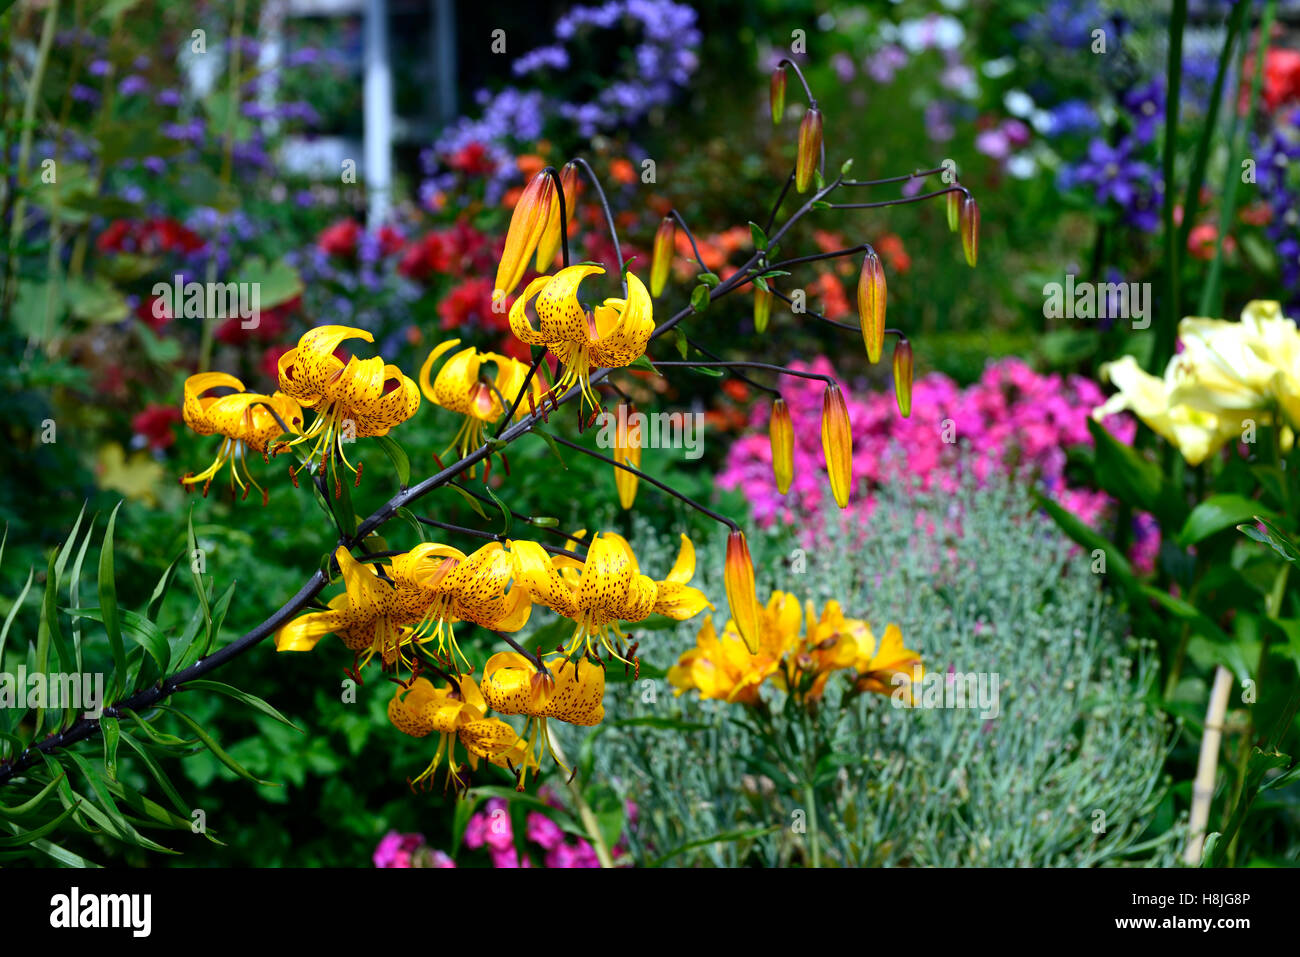 lilium leichtlinii yellow species lily lilies Herbaceous Border perennials lush planting scheme summer mix mixed - Stock Image